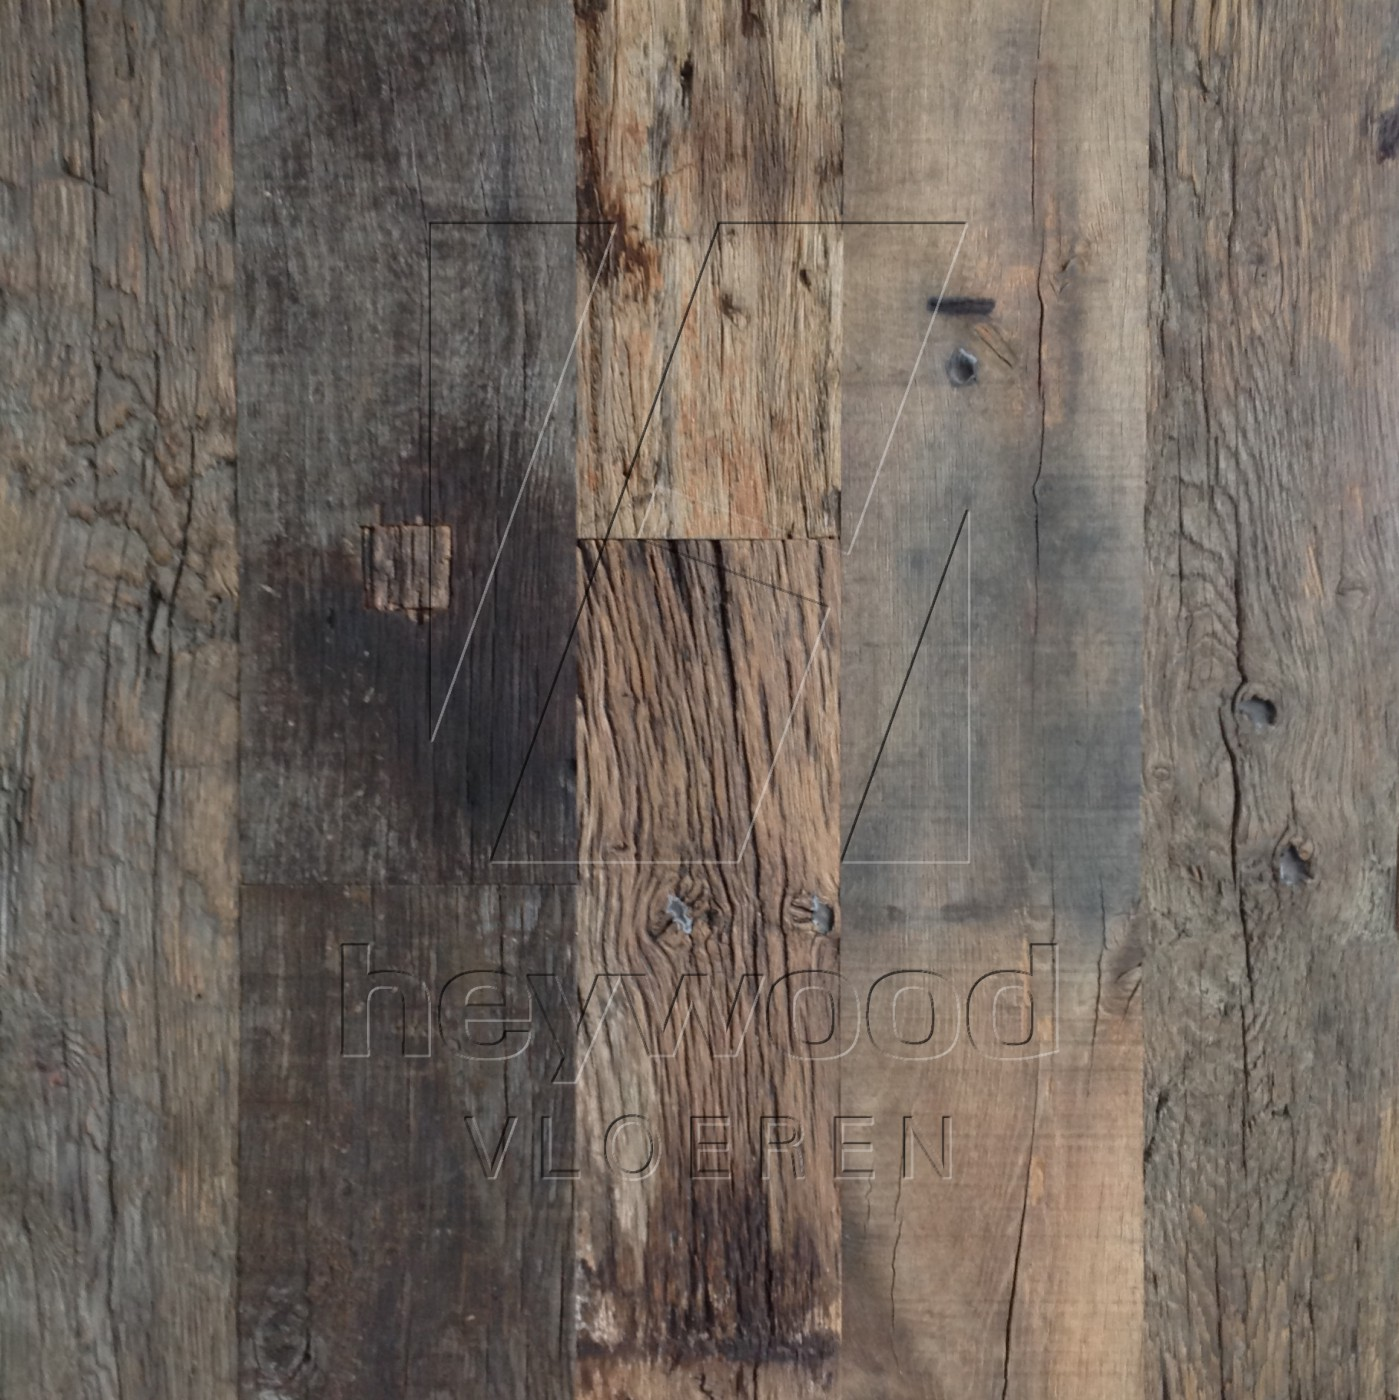 Bordeaux Plank (mixed widths, 80 years old Oak, Outside) in Plank OUTSIDES (authentic textured surface) of Old Reclaimed Wood